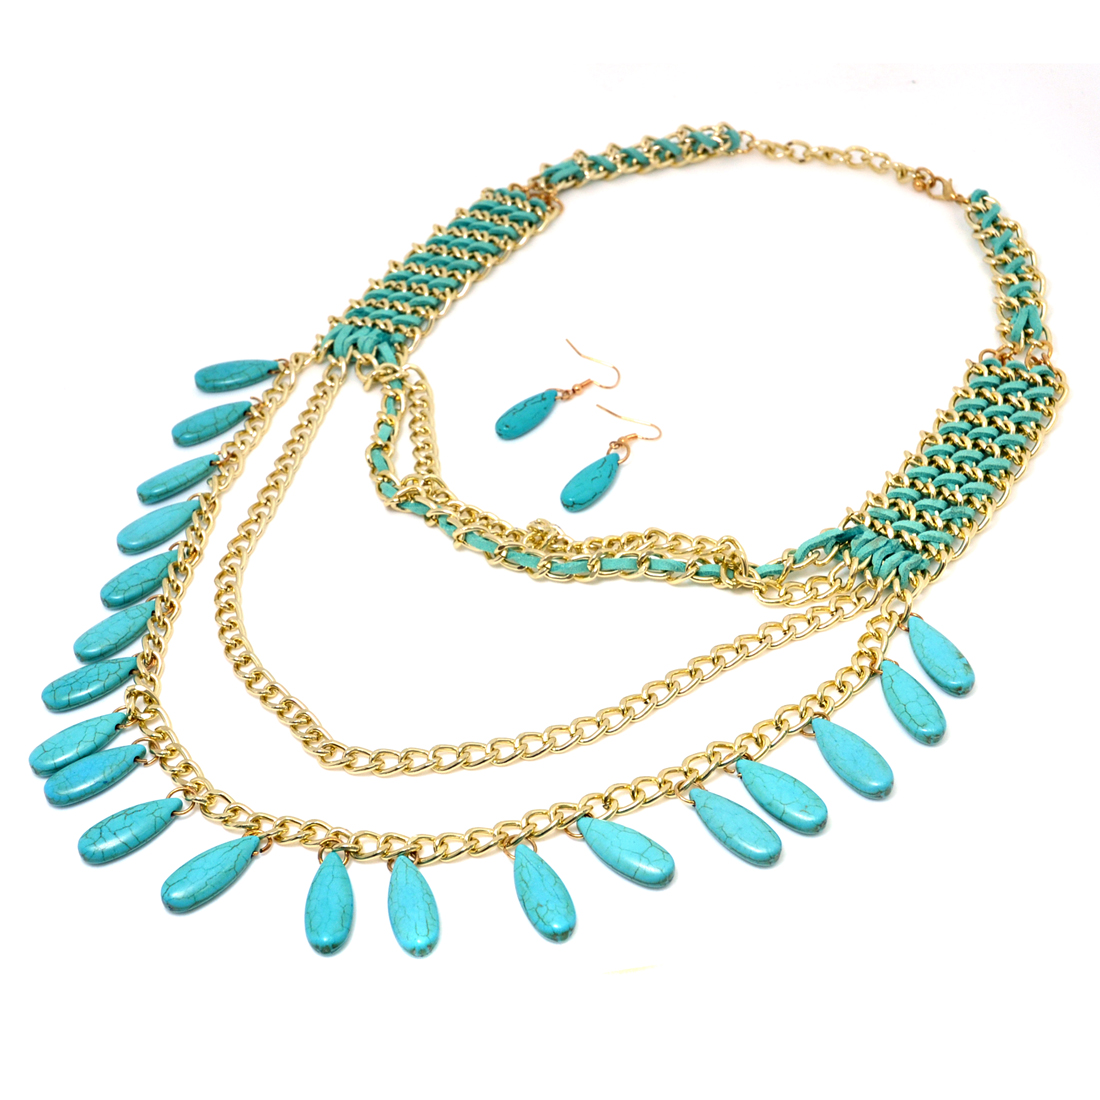 Gold-Tone Turquoise Beaded 4-Tier Necklace